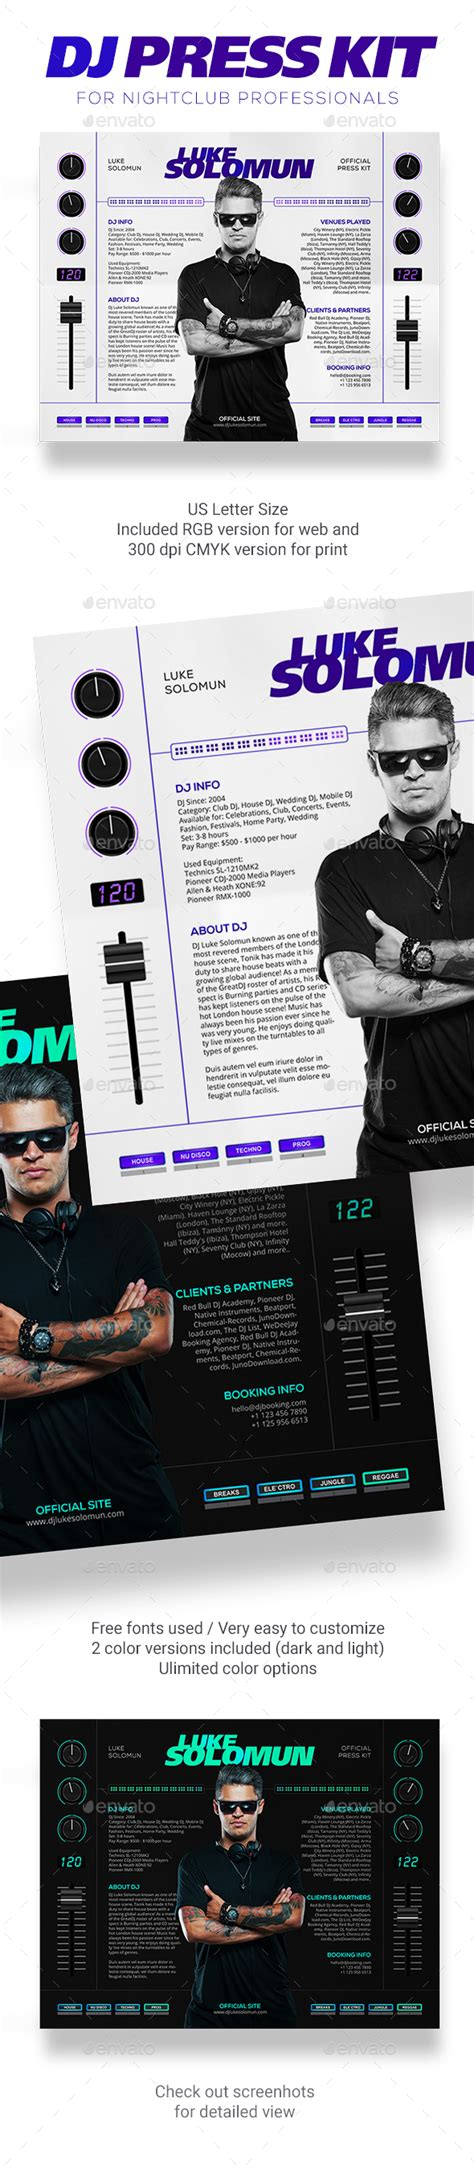 Madjestik Dj Press Kit Dj Resume Dj Rider Psd Template By Vinyljunkie Free Press Kit Template Psd